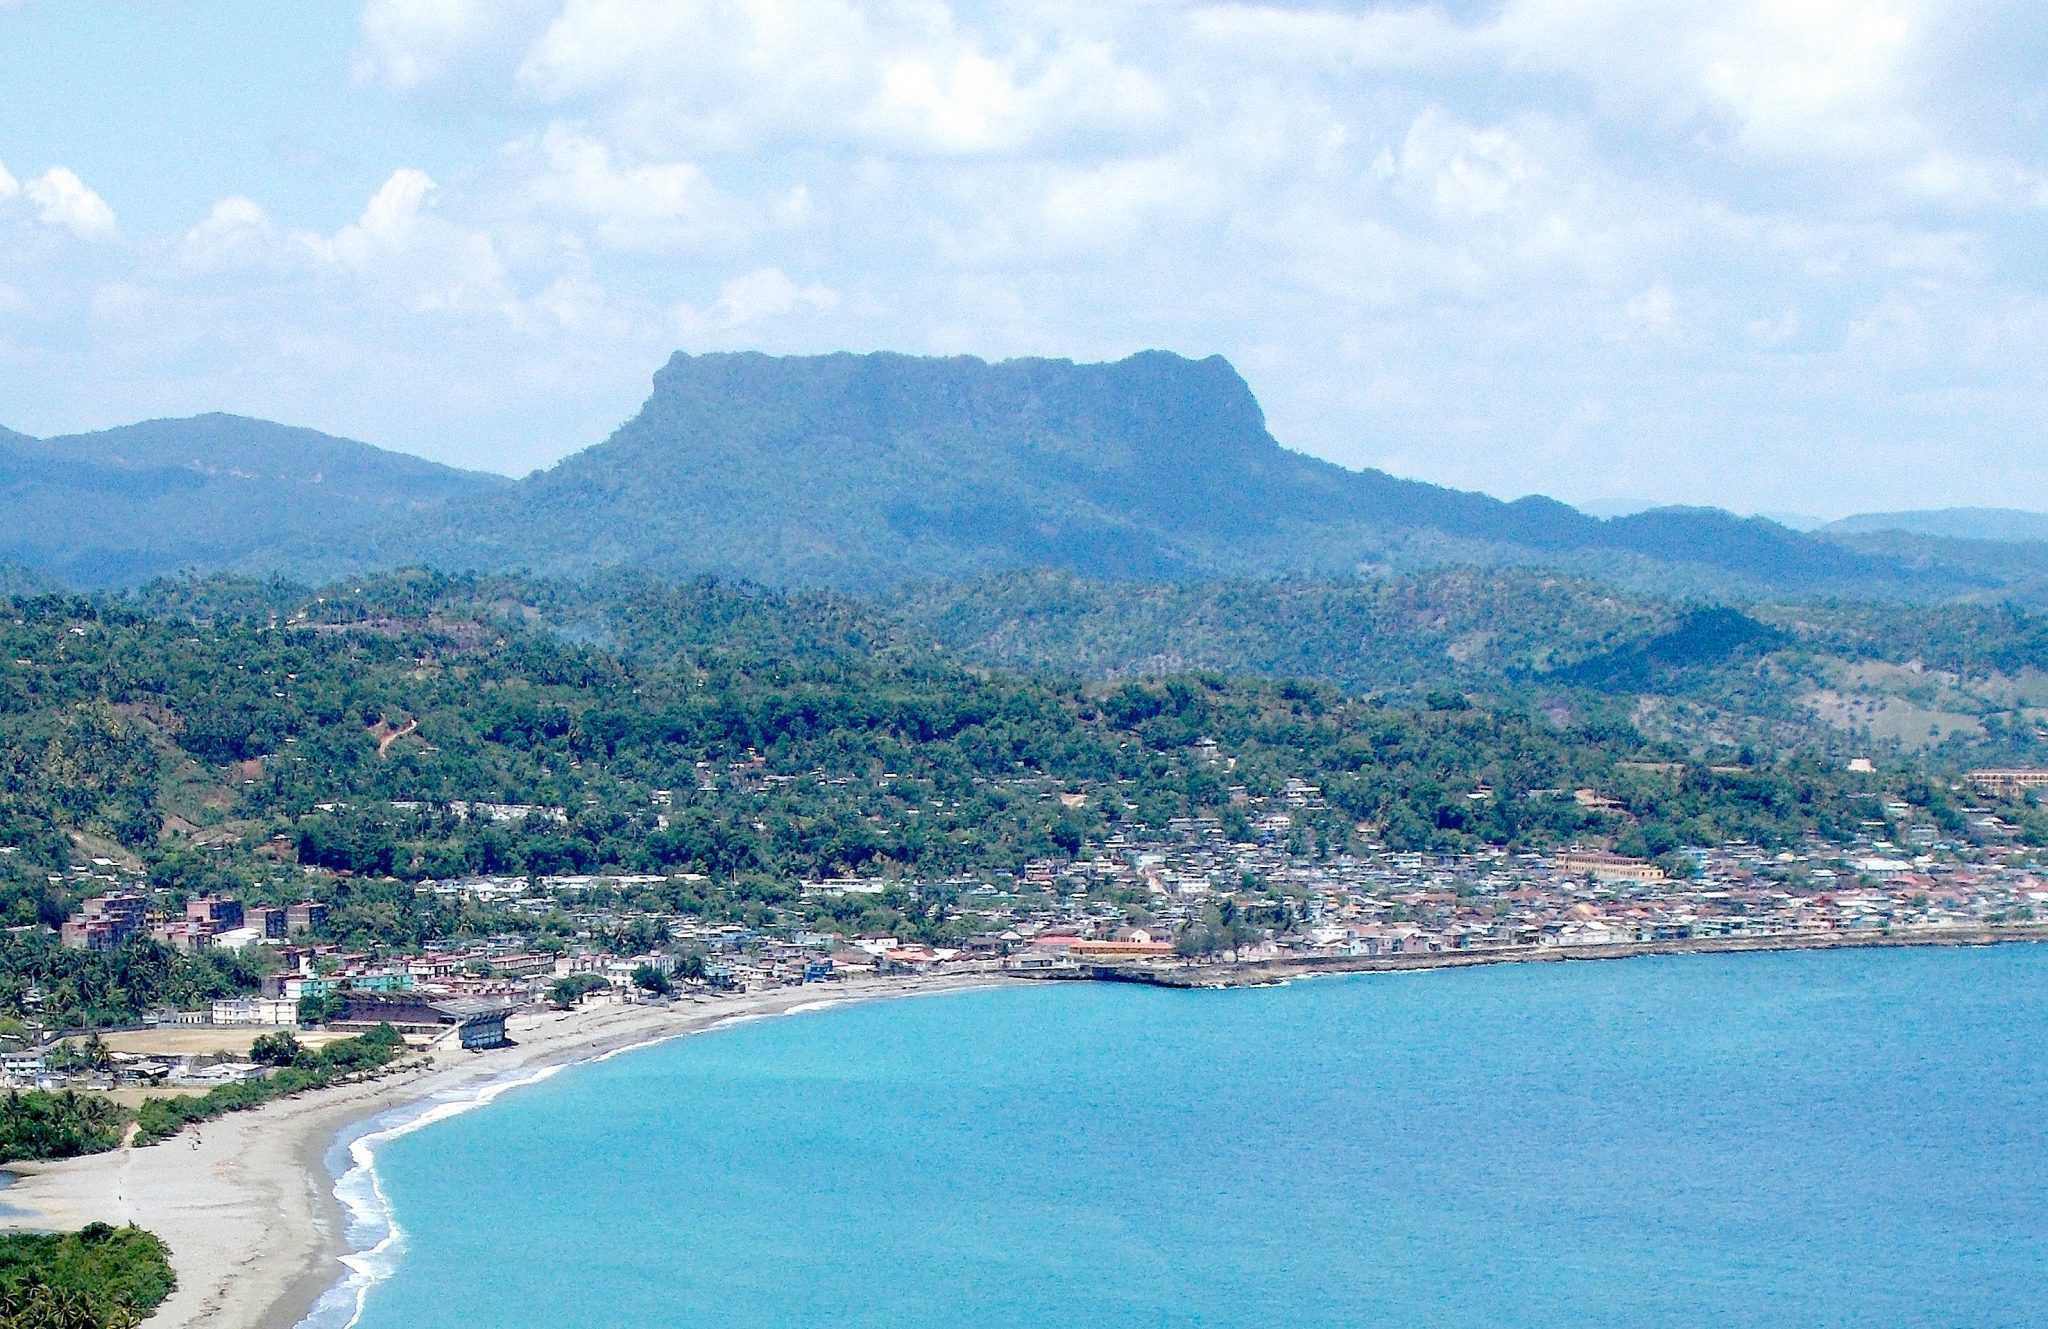 El_Yunque_and_Baracoa,_Cuba,_from_the_south,_taken_May_2013_(cropped)